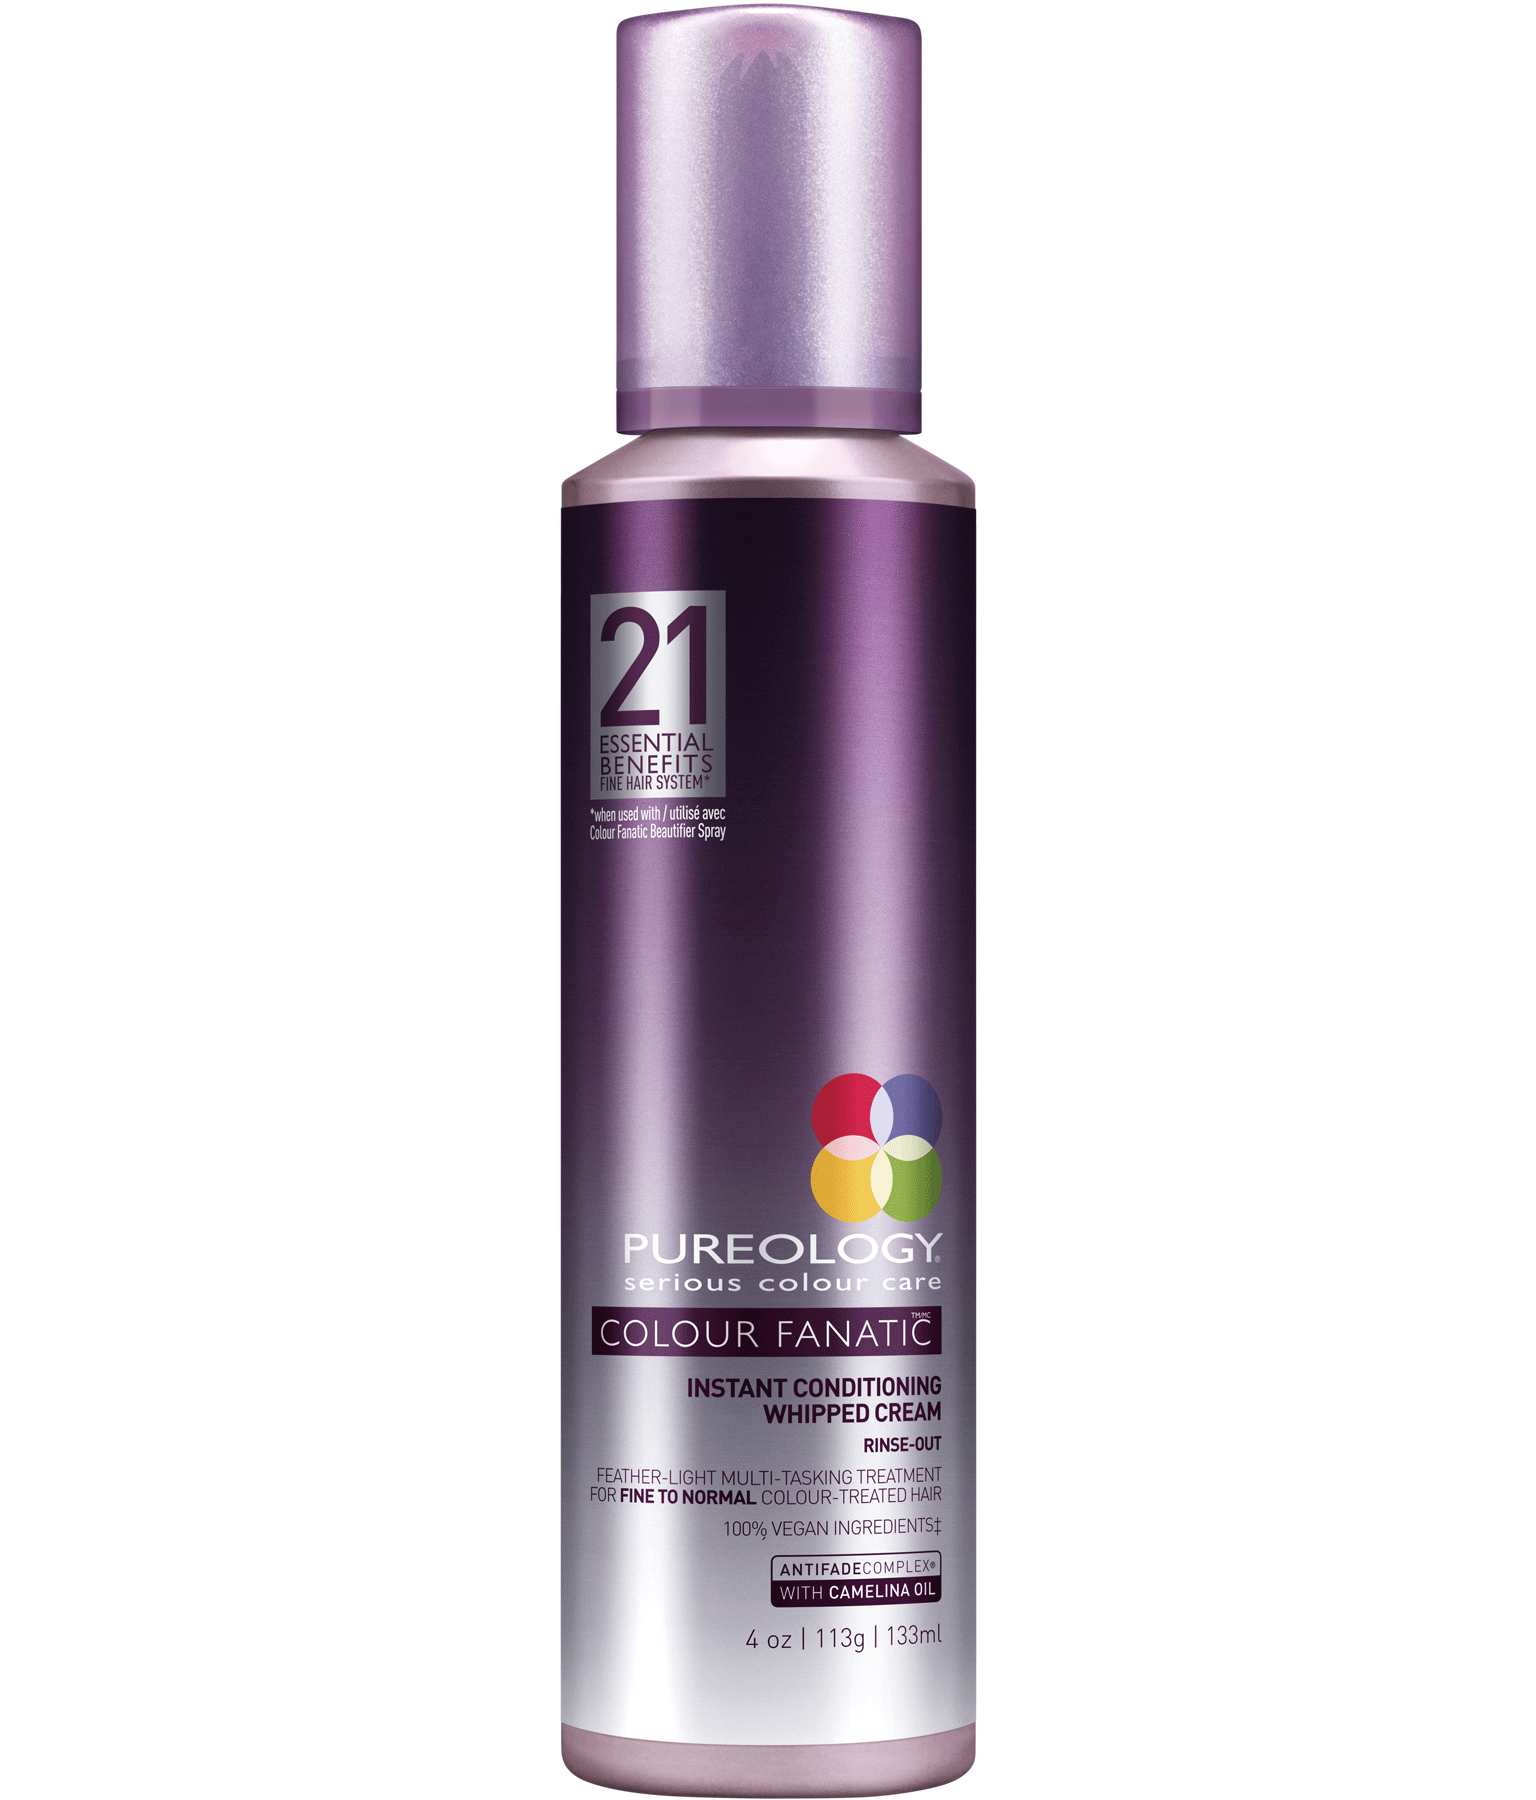 Colour Fanatic Conditioning Whipped Hair Cream Retail Size Pureology